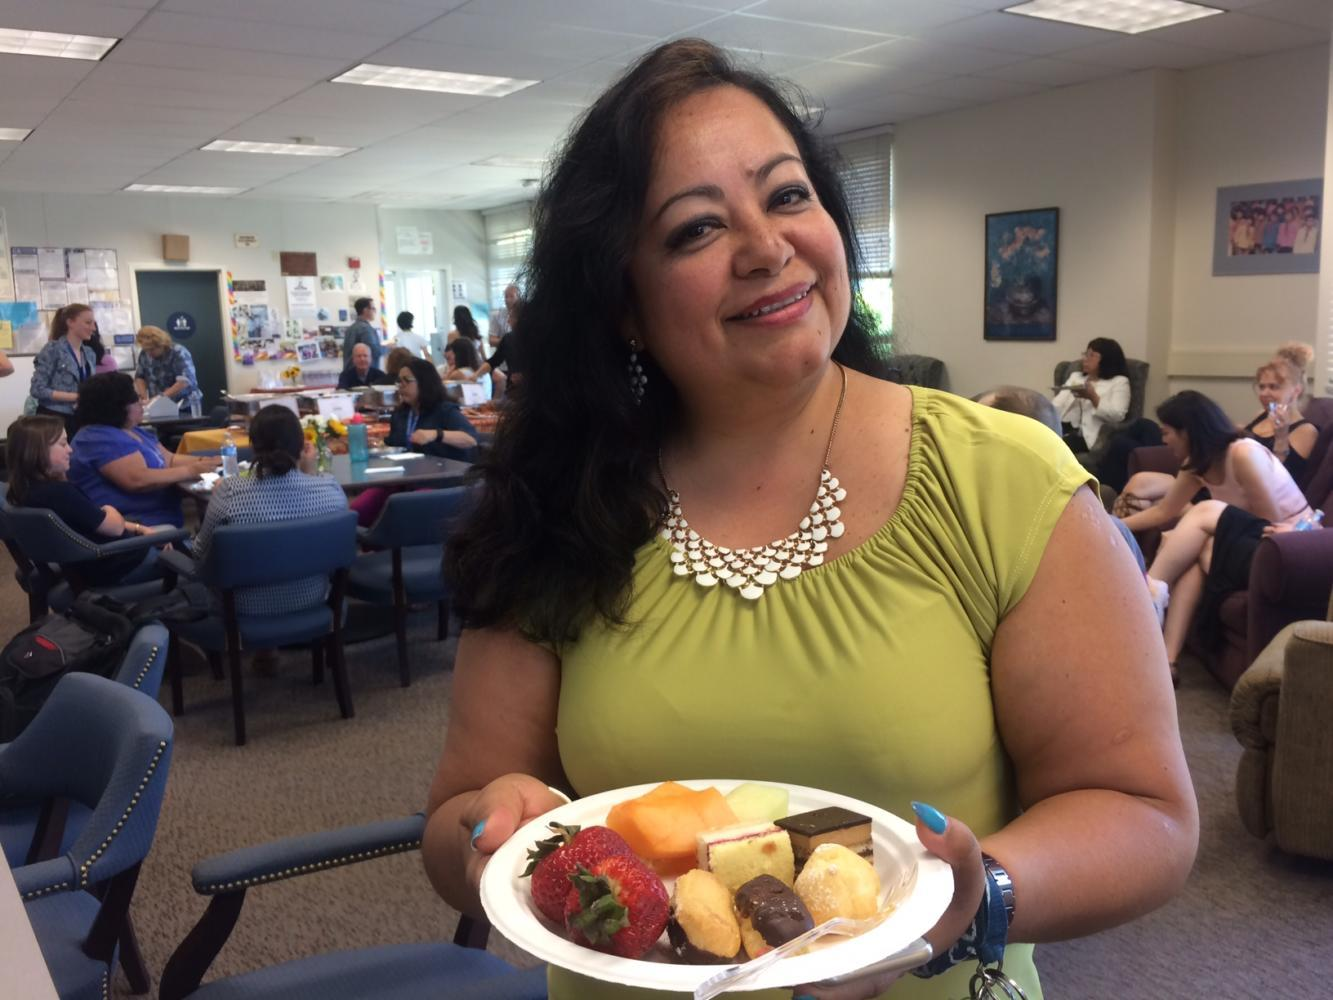 Rosa Argaluza, a Spanish teacher, gets food in the Teachers' Lounge during the Vivace Luncheon for Teacher Appreciation Week.